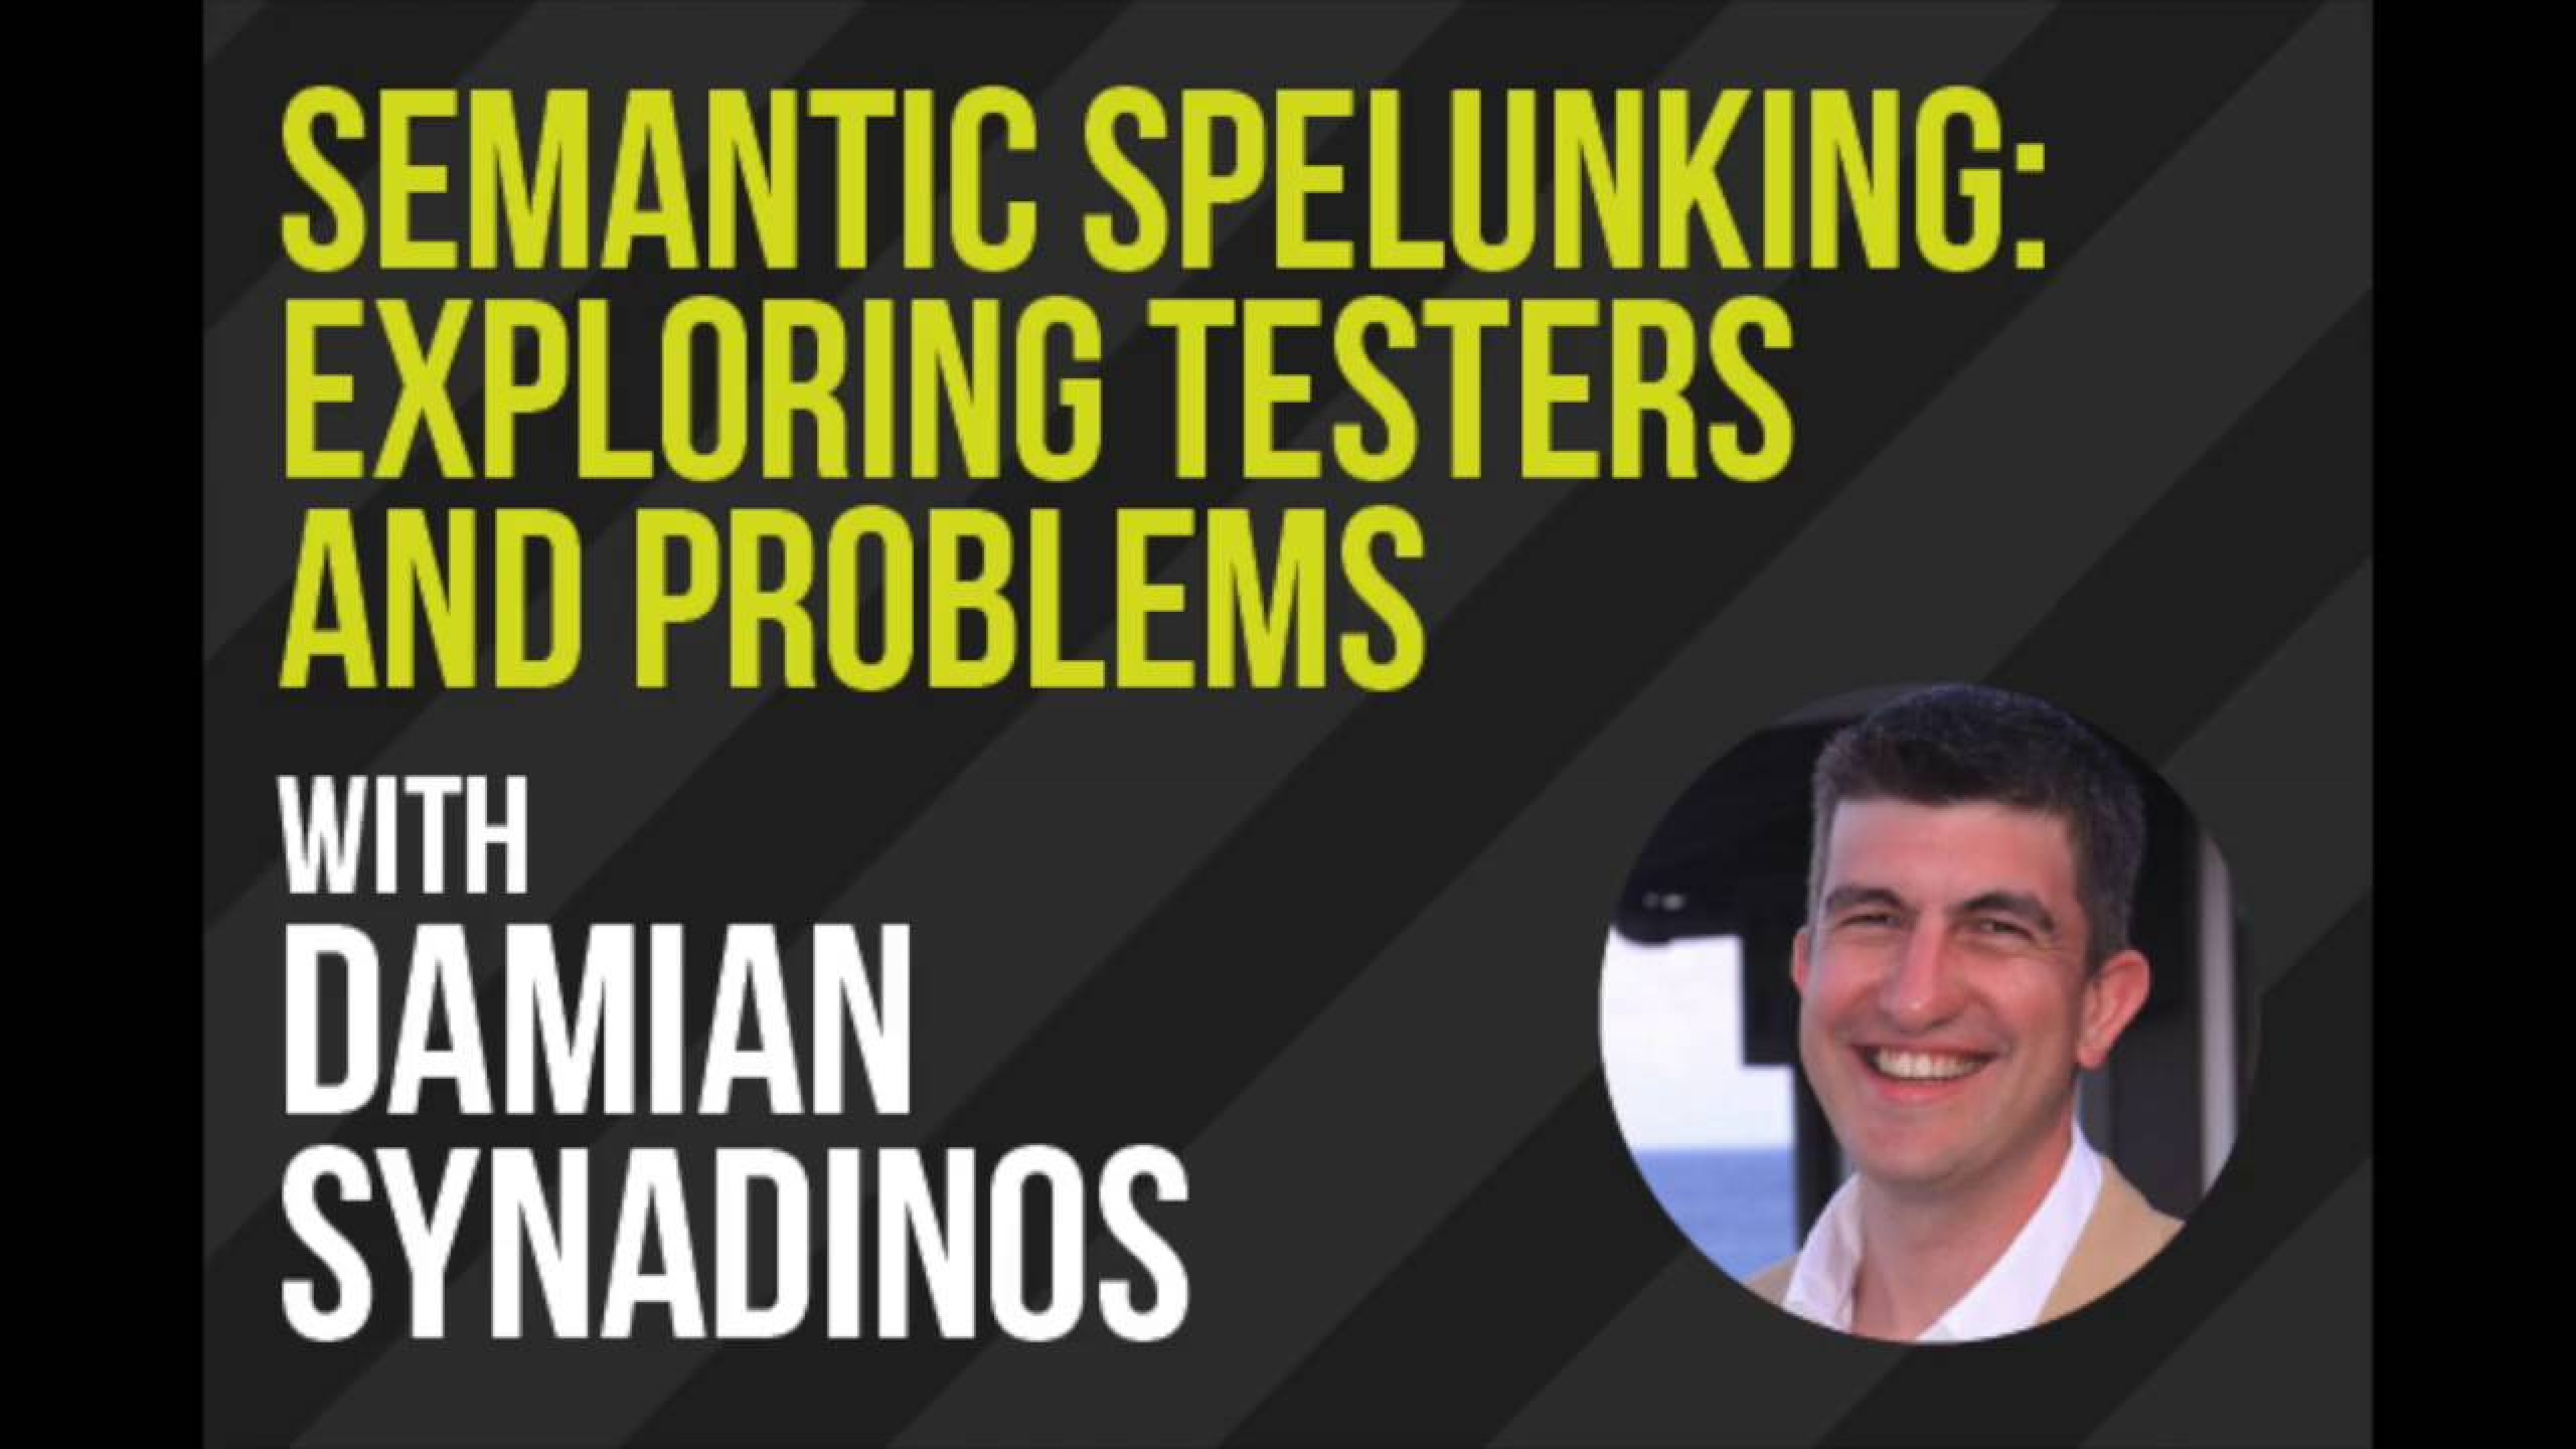 Semantic Spelunking: Exploring Testers and Problems with Damian Synadinos